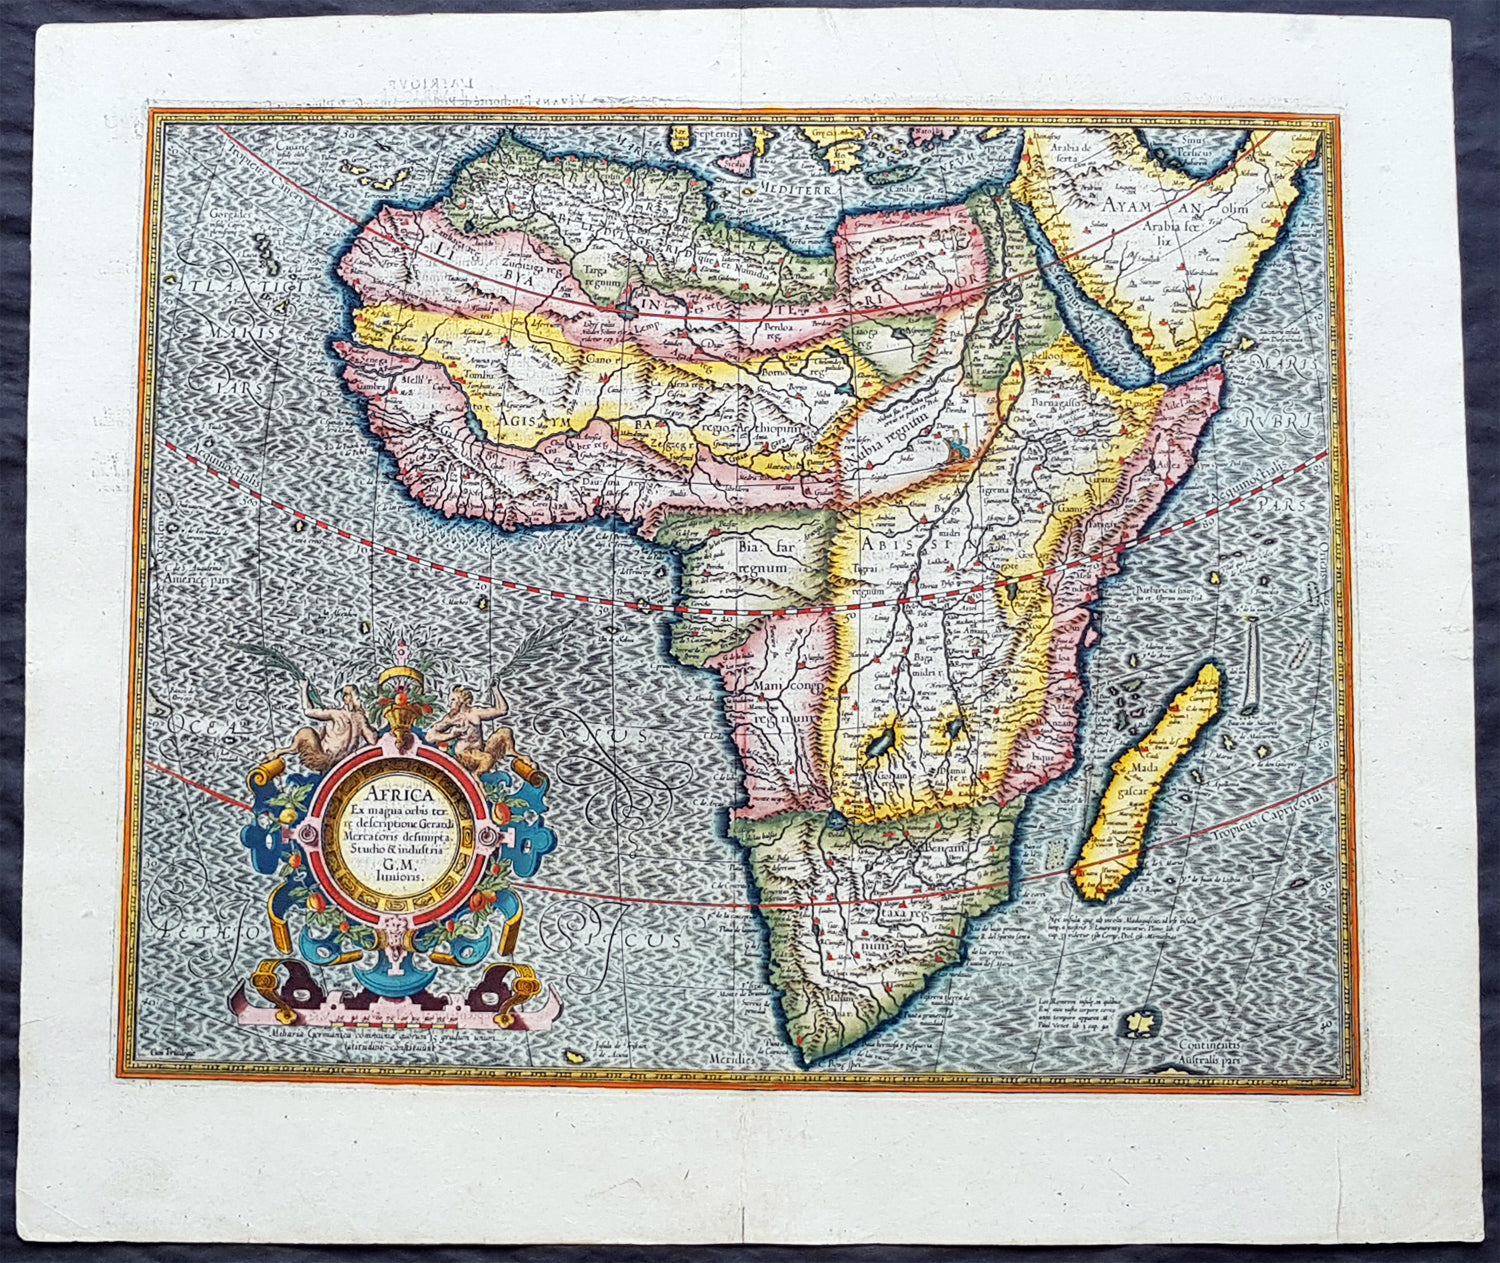 1613 Gerard Mercator Large Antique Map of Africa - Africa Ex Magna on map of sz, map of sh, map of ei, map of mh, map of gh, map of ke, map of re, map of air force bases overseas, map of asia, map of gl, map of afganis, map of cl, map of africa, map of ci, map of ggc, map of ic, map of sn, map of spangdahlem air force base, map of afr, map of ta,